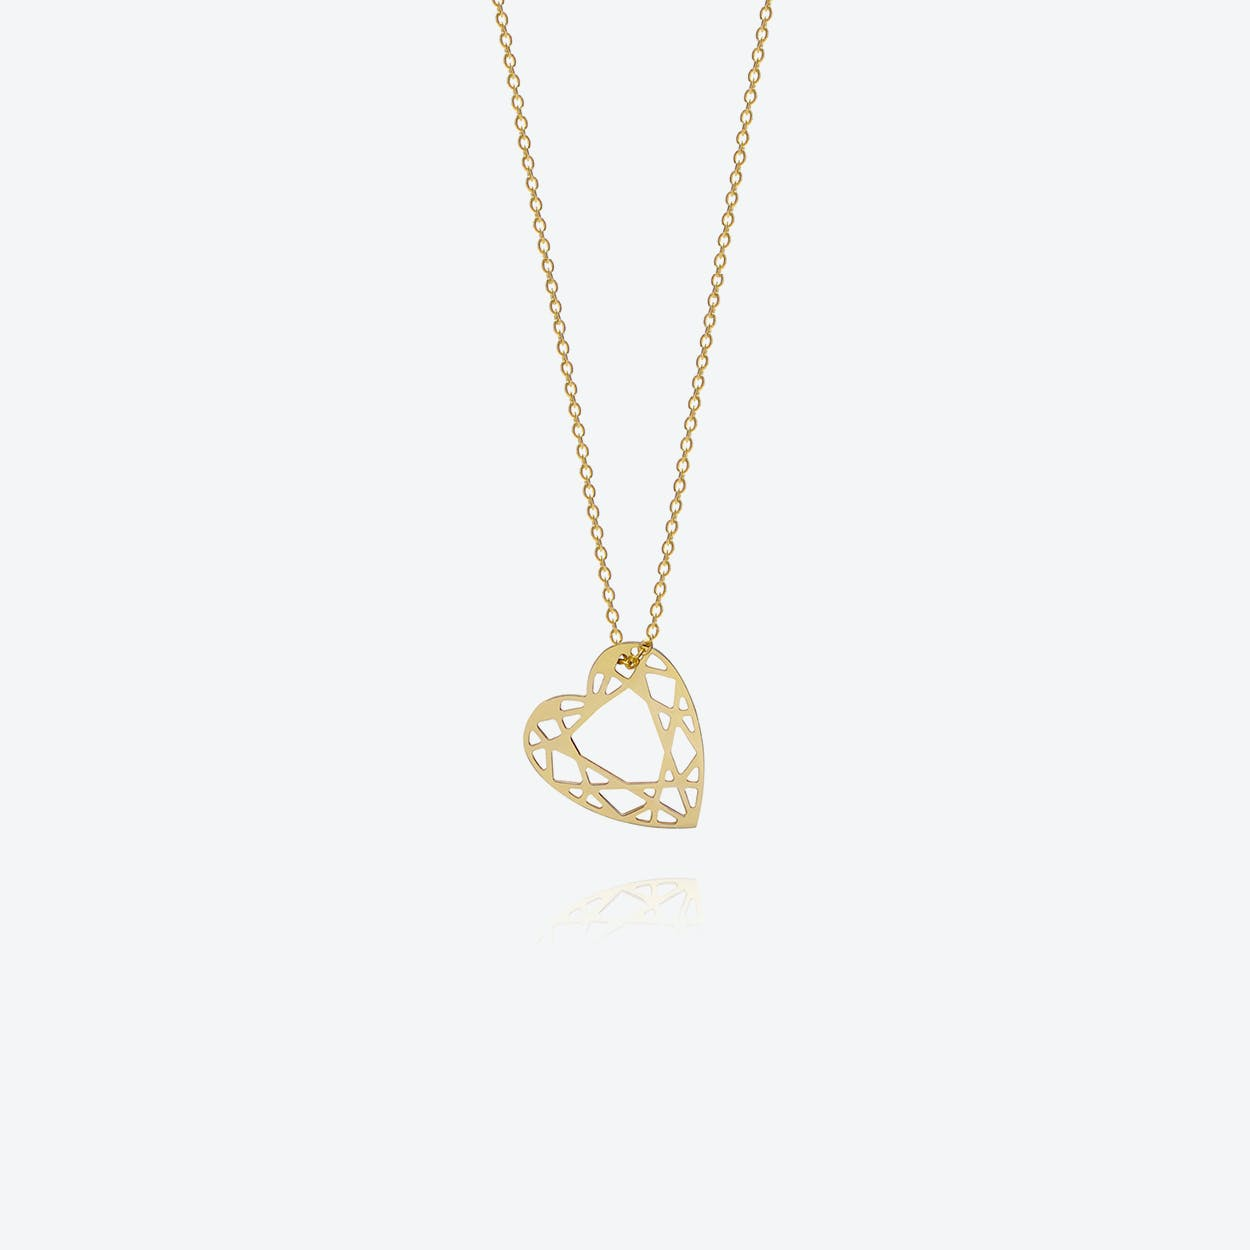 Small Heart Diamond Necklace in Gold